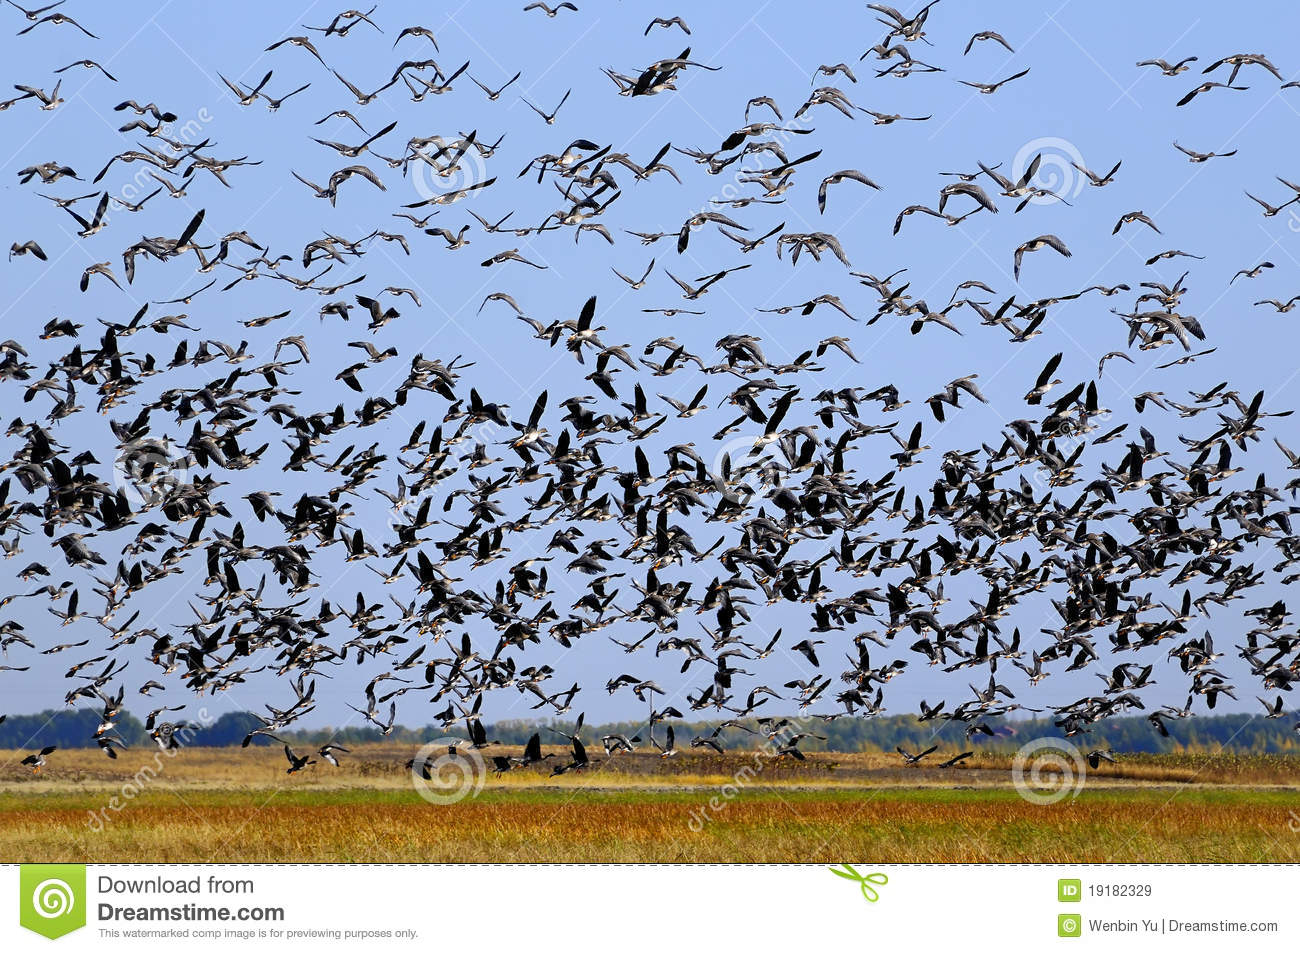 Flying Birds Free Stock Photos Download 3 416 Free Stock: Countless Birds Stock Image. Image Of Flying, Bird, Many